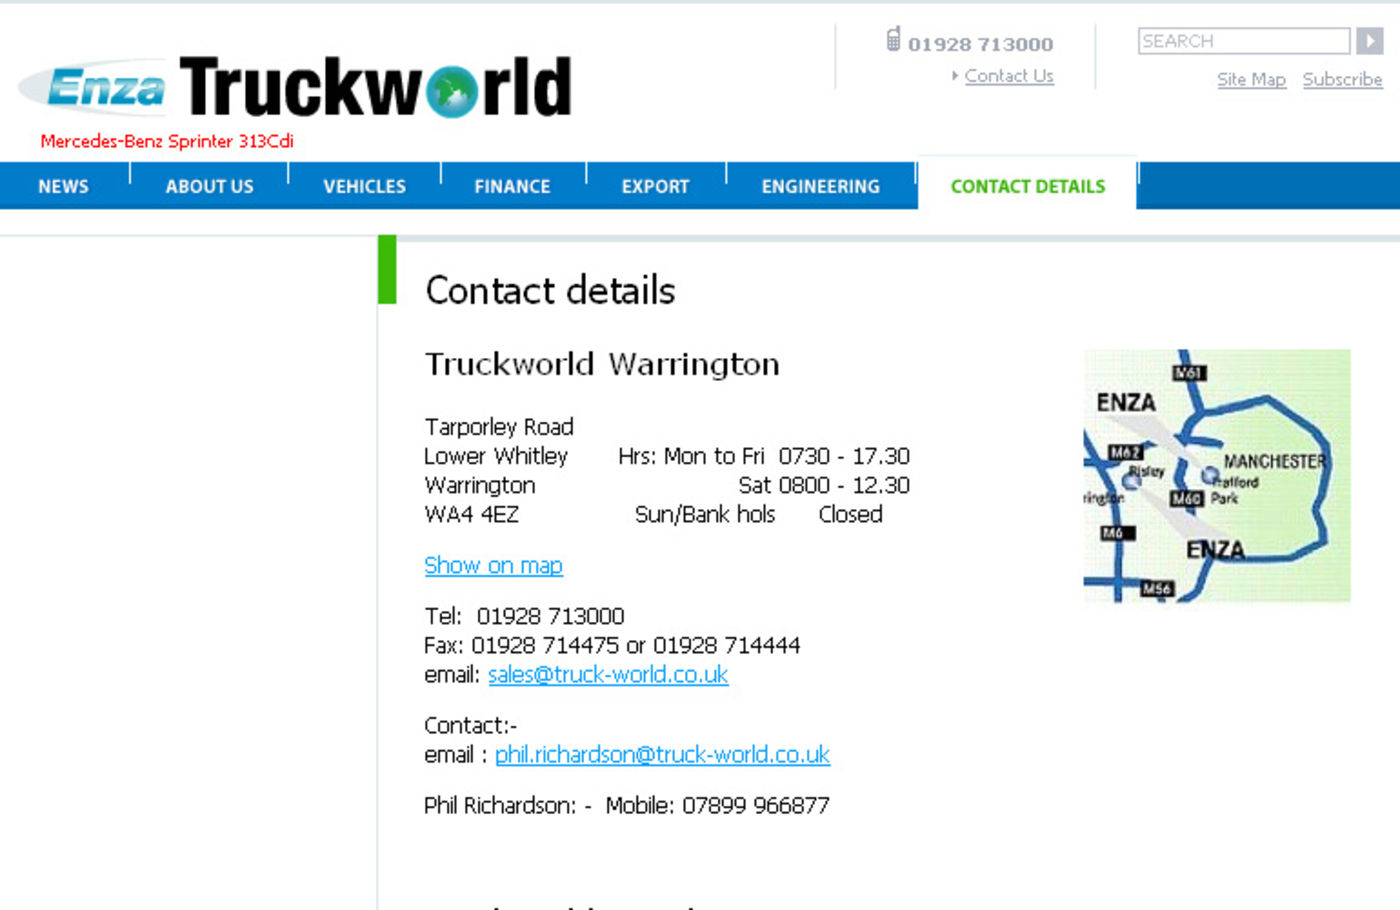 Enza's Truck World Contact details